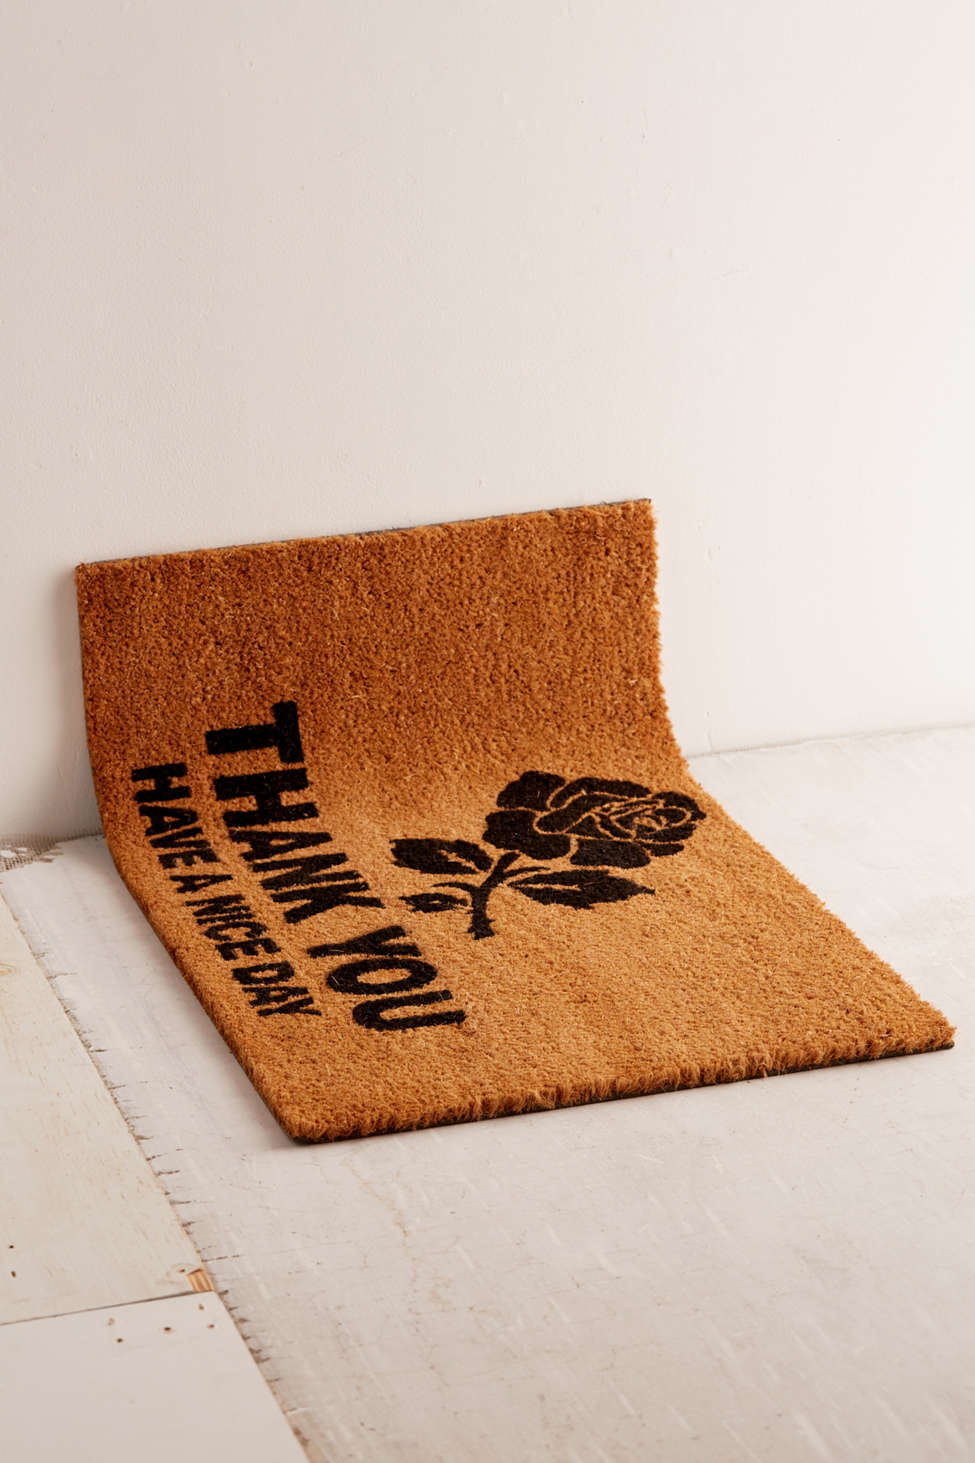 Slide View: 1: Chinatown Market For UO Thank You Doormat